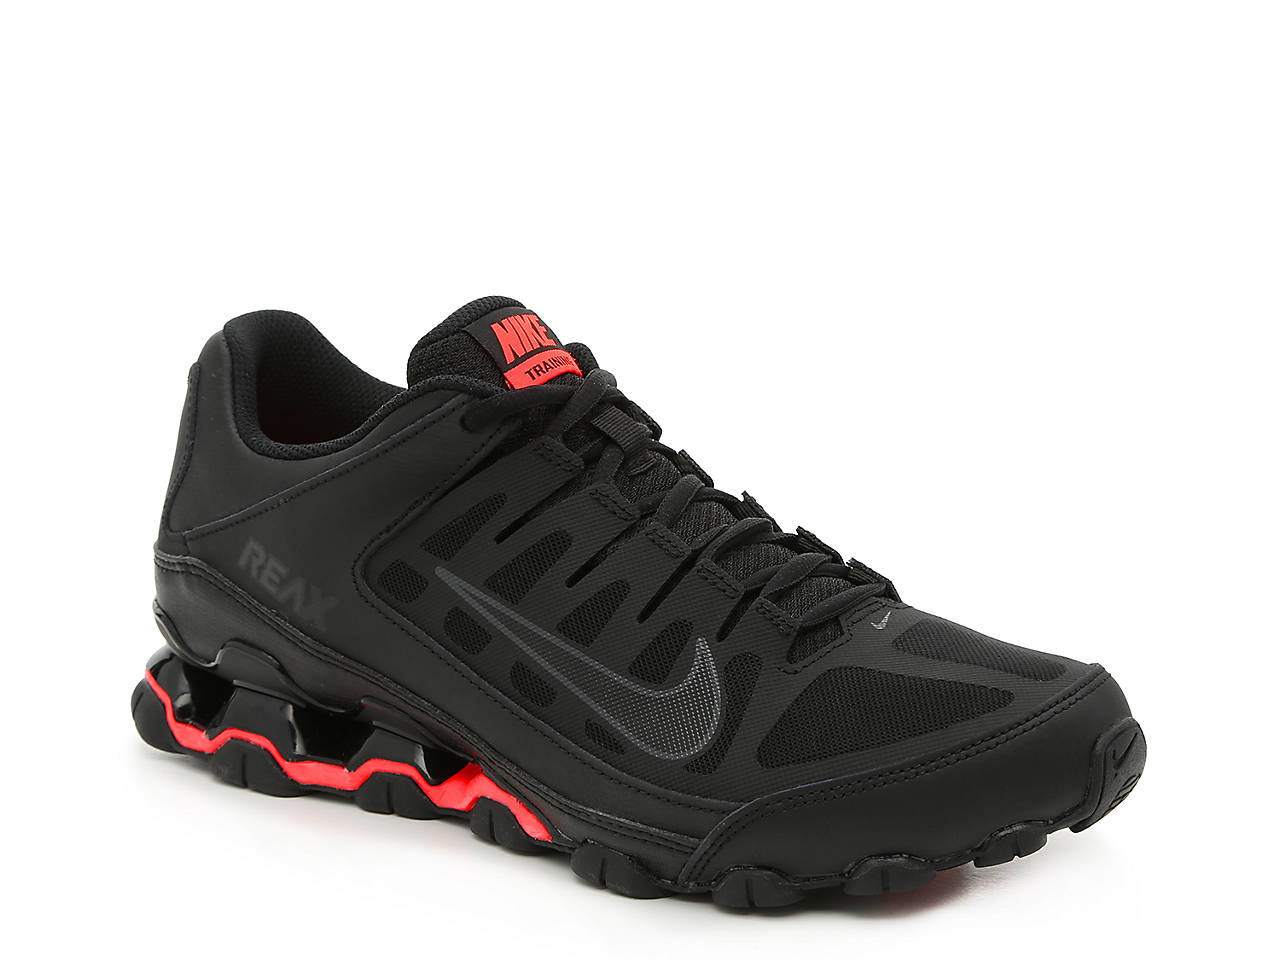 60a780ecfae7 Nike Reax 8 TR Training Shoe - Men s Men s Shoes